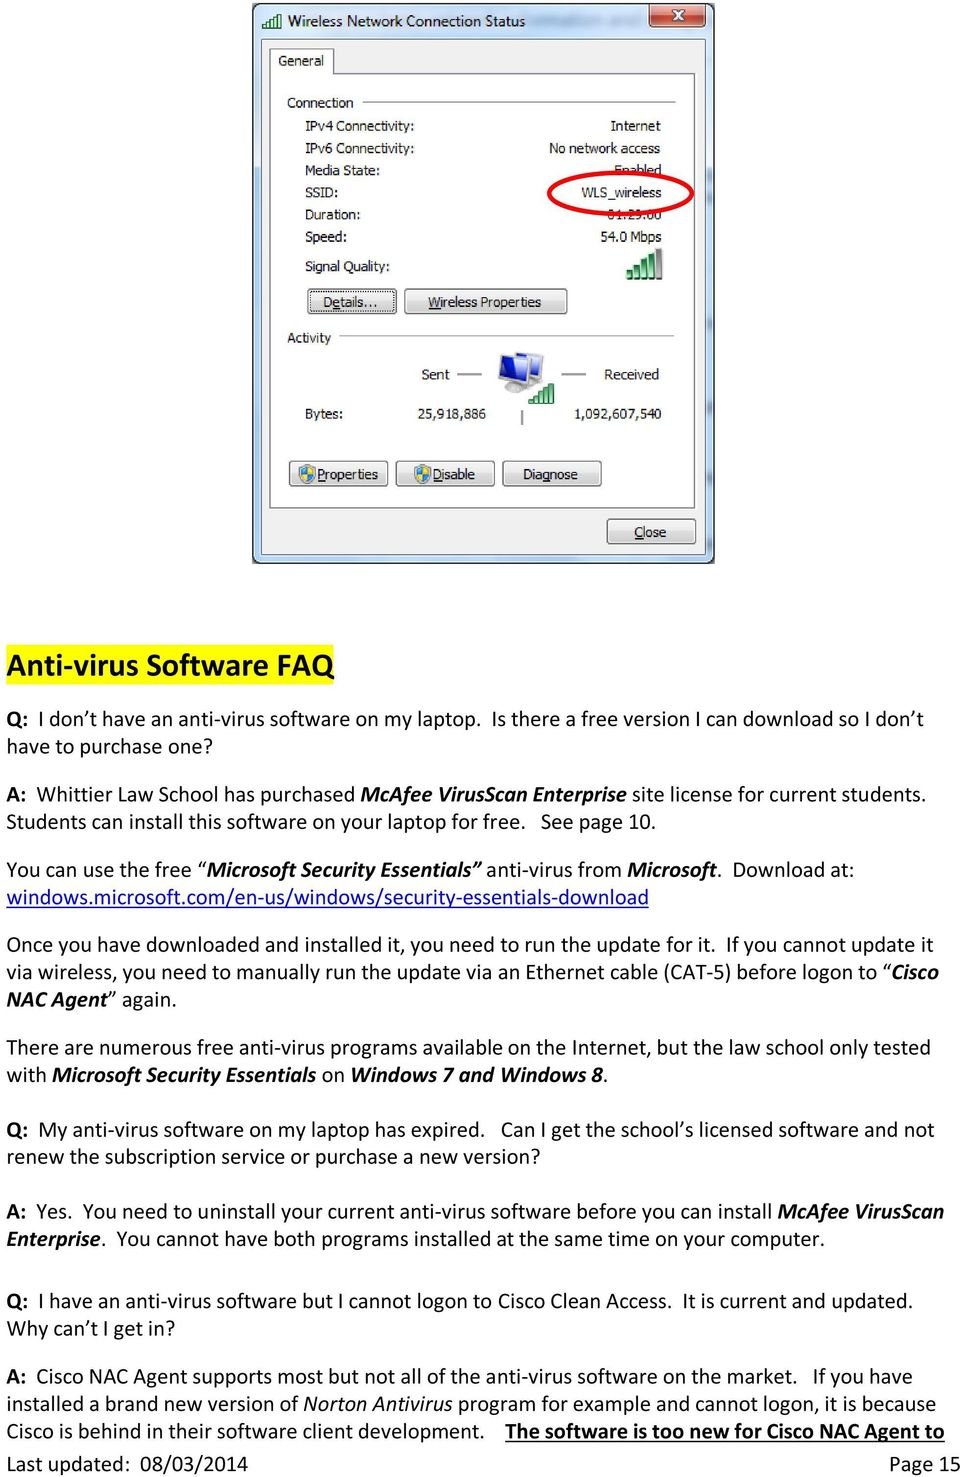 You can use the free Microsoft Security Essentials anti-virus from Microsoft. Download at: windows.microsoft.